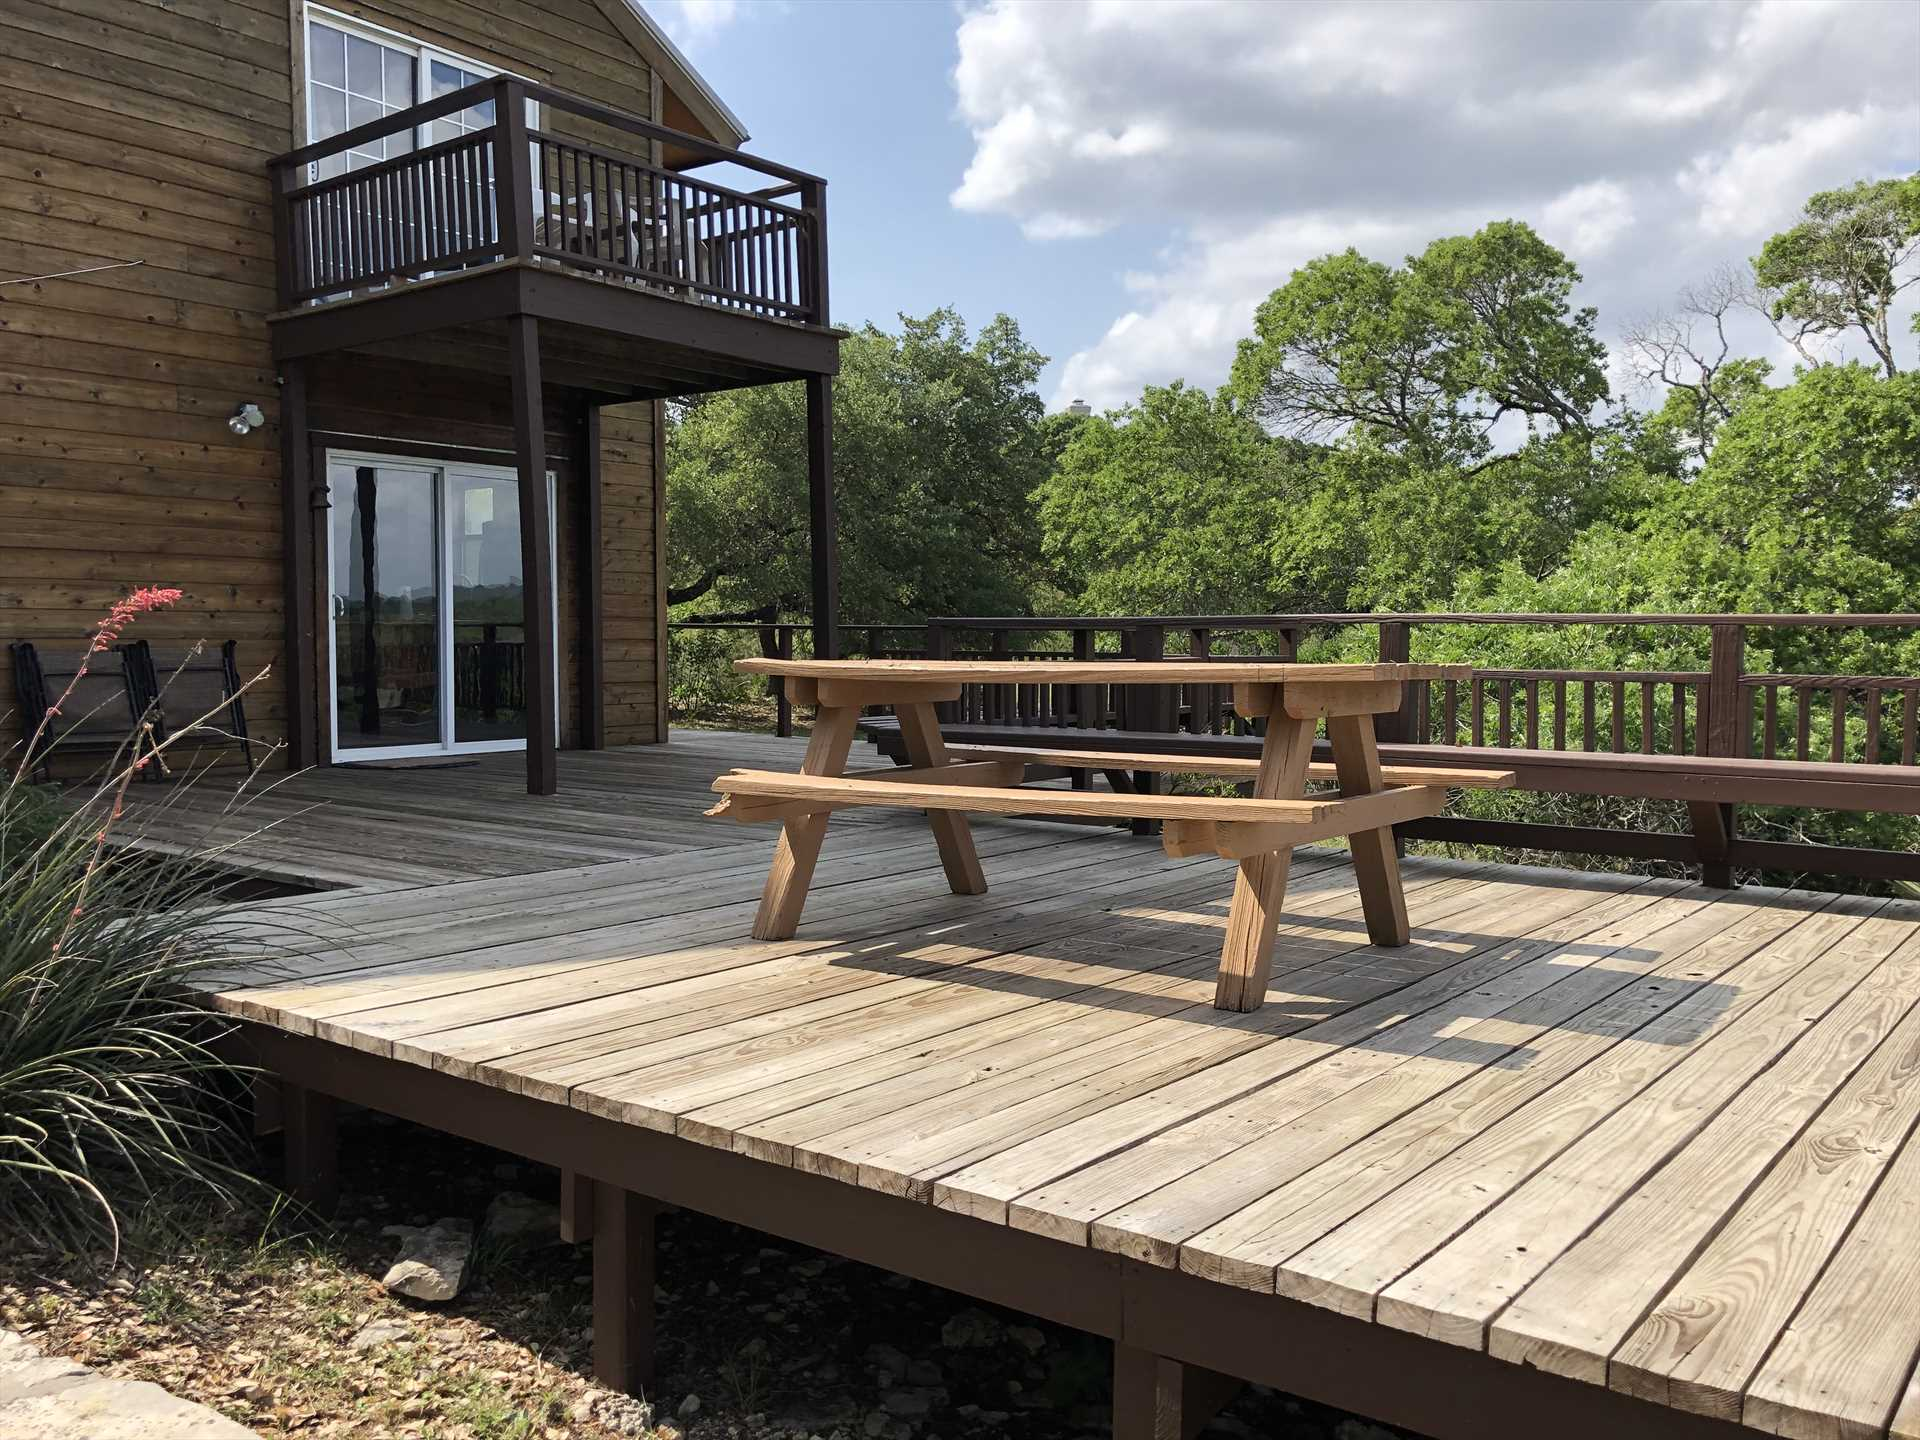 The upper level of the back deck features a picnic table and bench-style seating. Just a few steps down from here is your private hot tub!